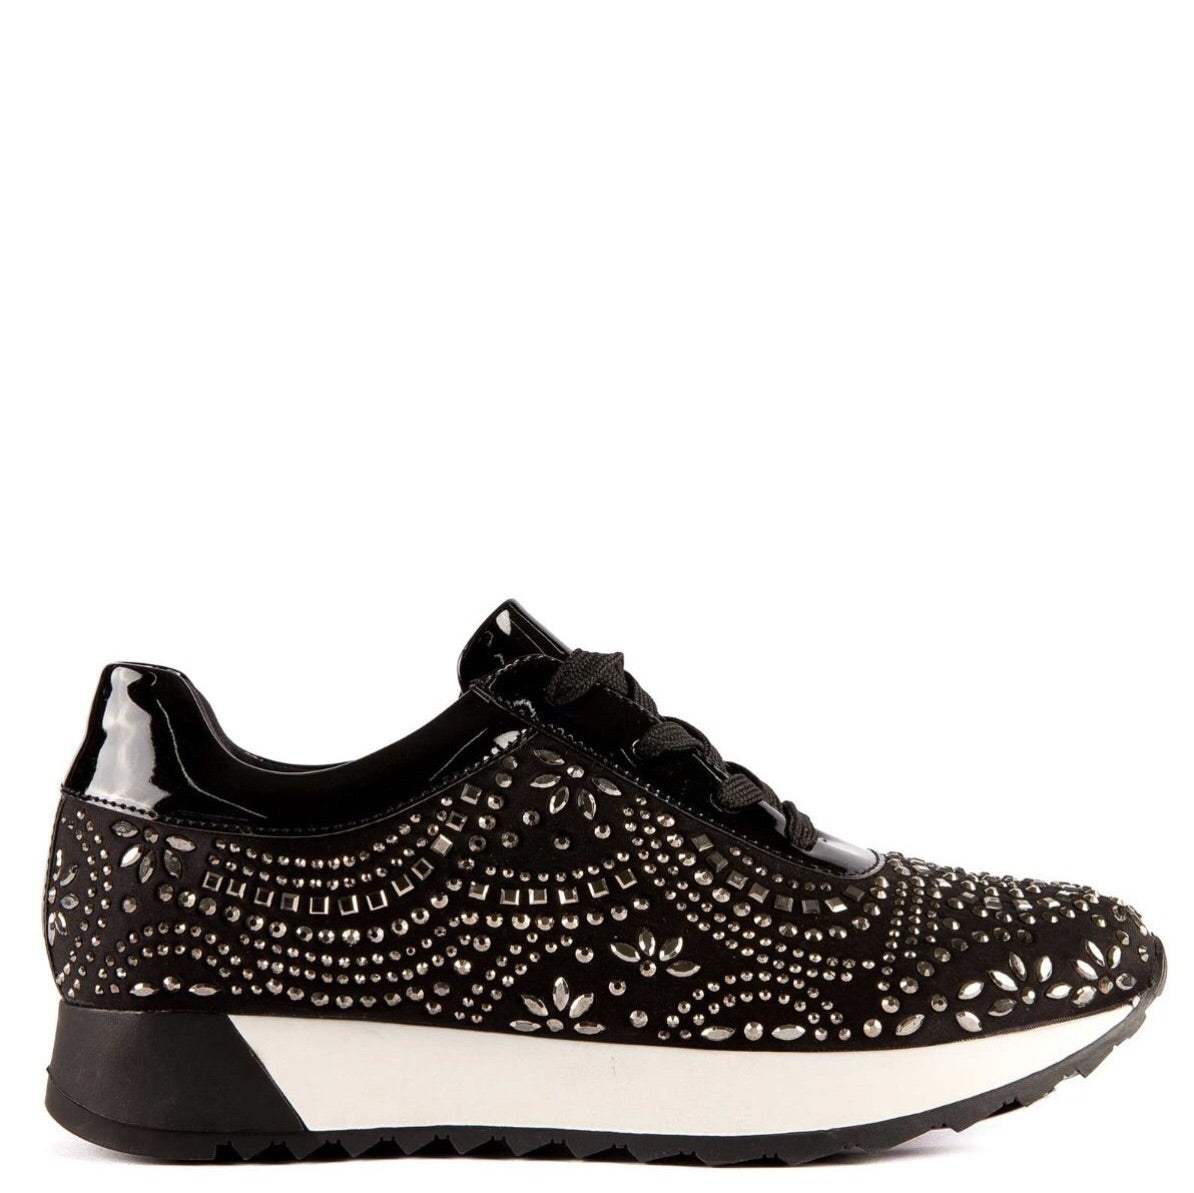 Migato Embellished Black Trainers